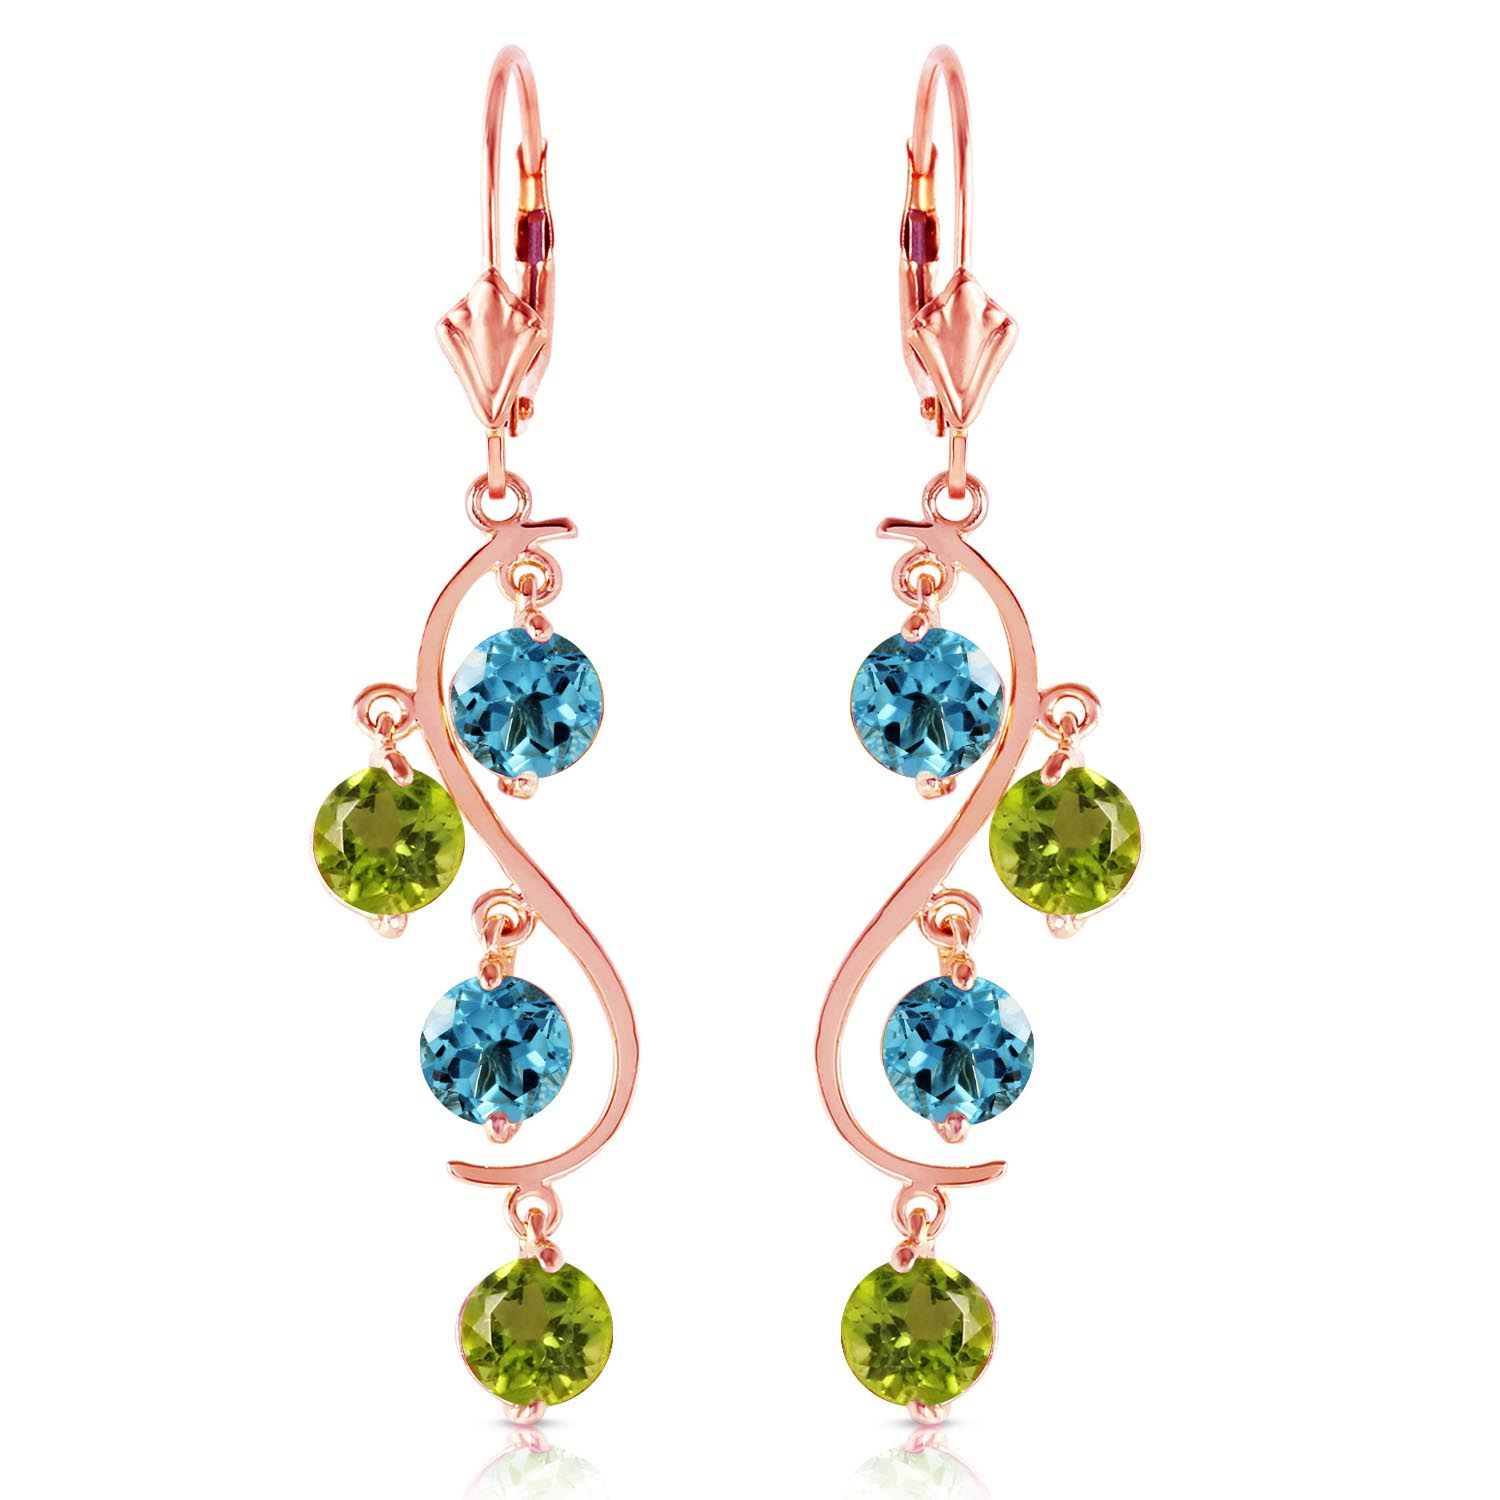 Blue Topaz and Peridot Dream Catcher Drop Earrings 4.94ctw in 14K Rose Gold